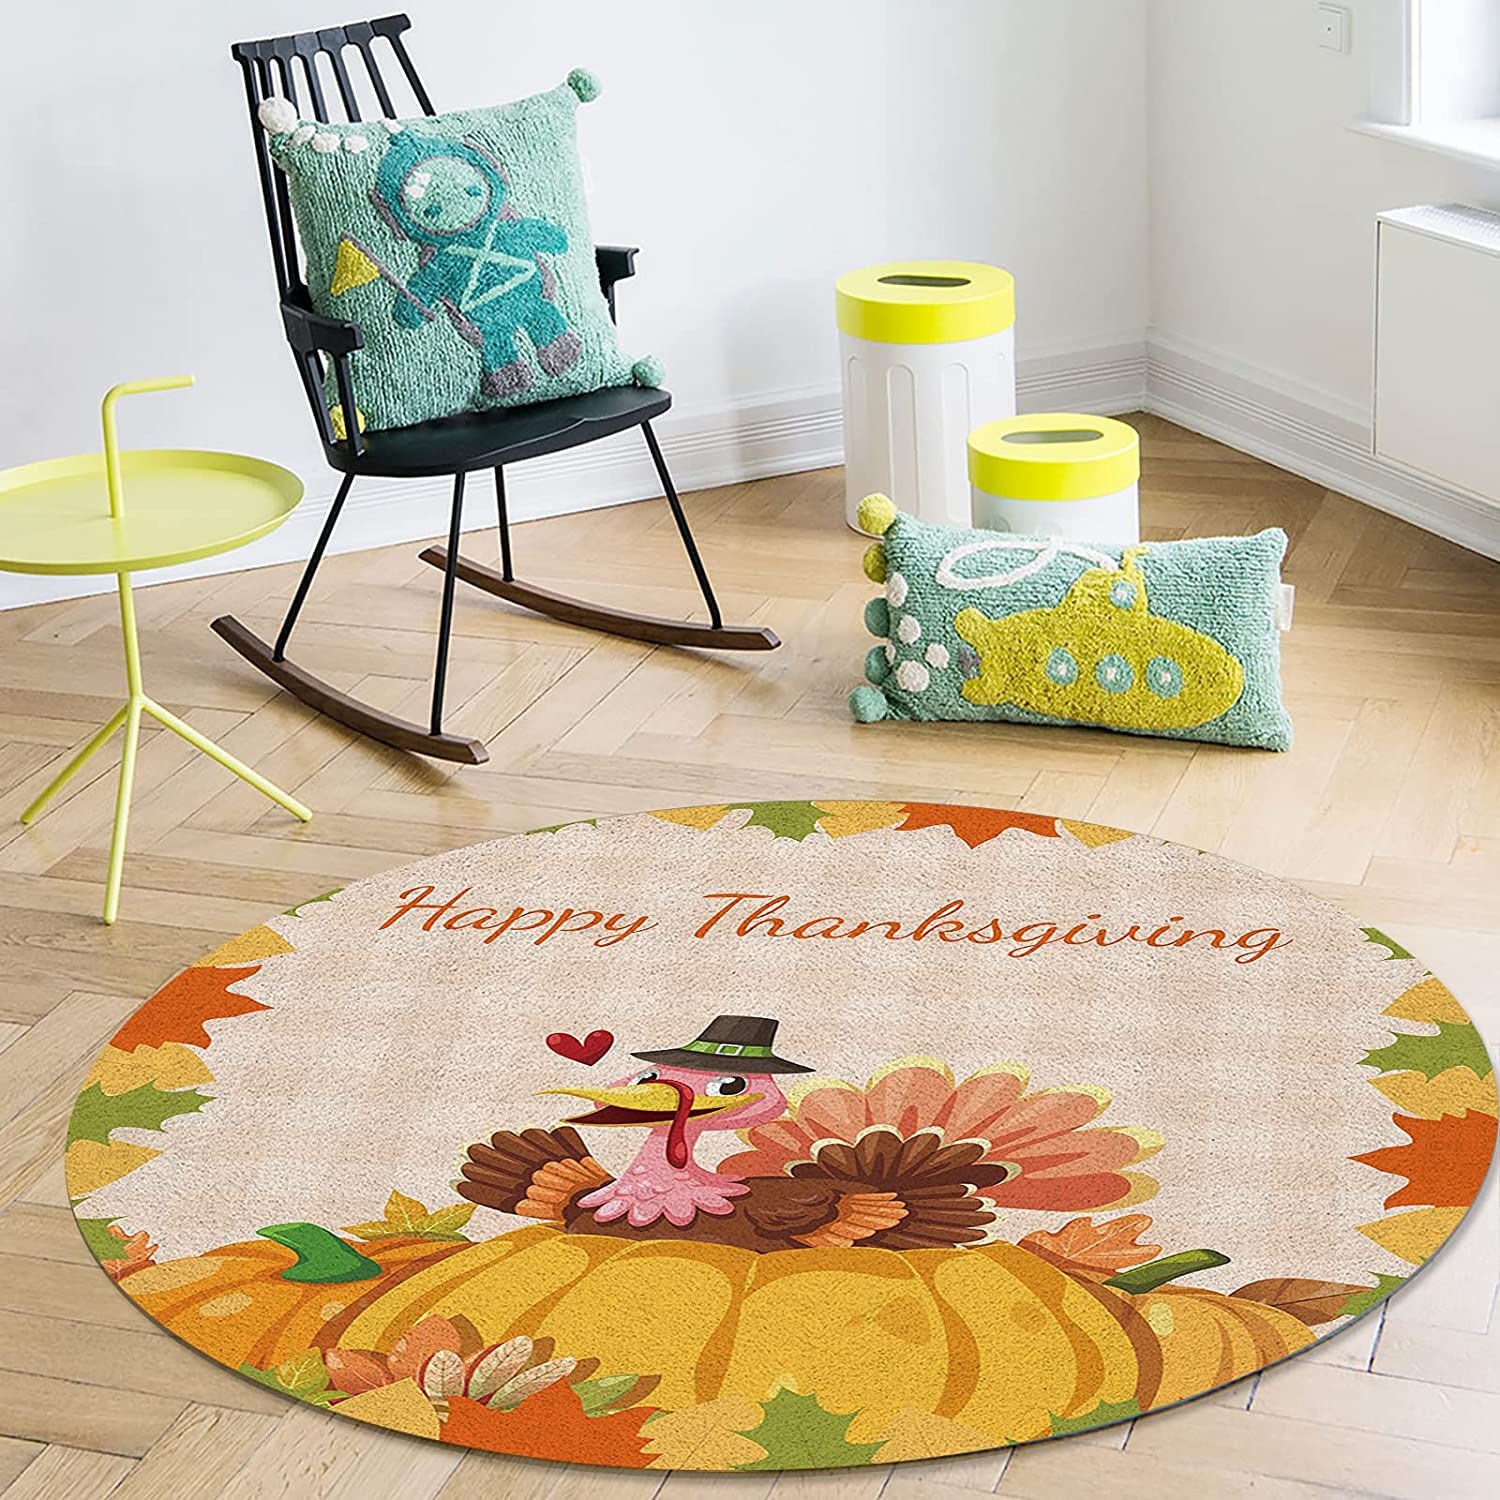 Area Rugs Ultra Soft Felt Online limited product Lving Happy for Genuine Thanksg Room